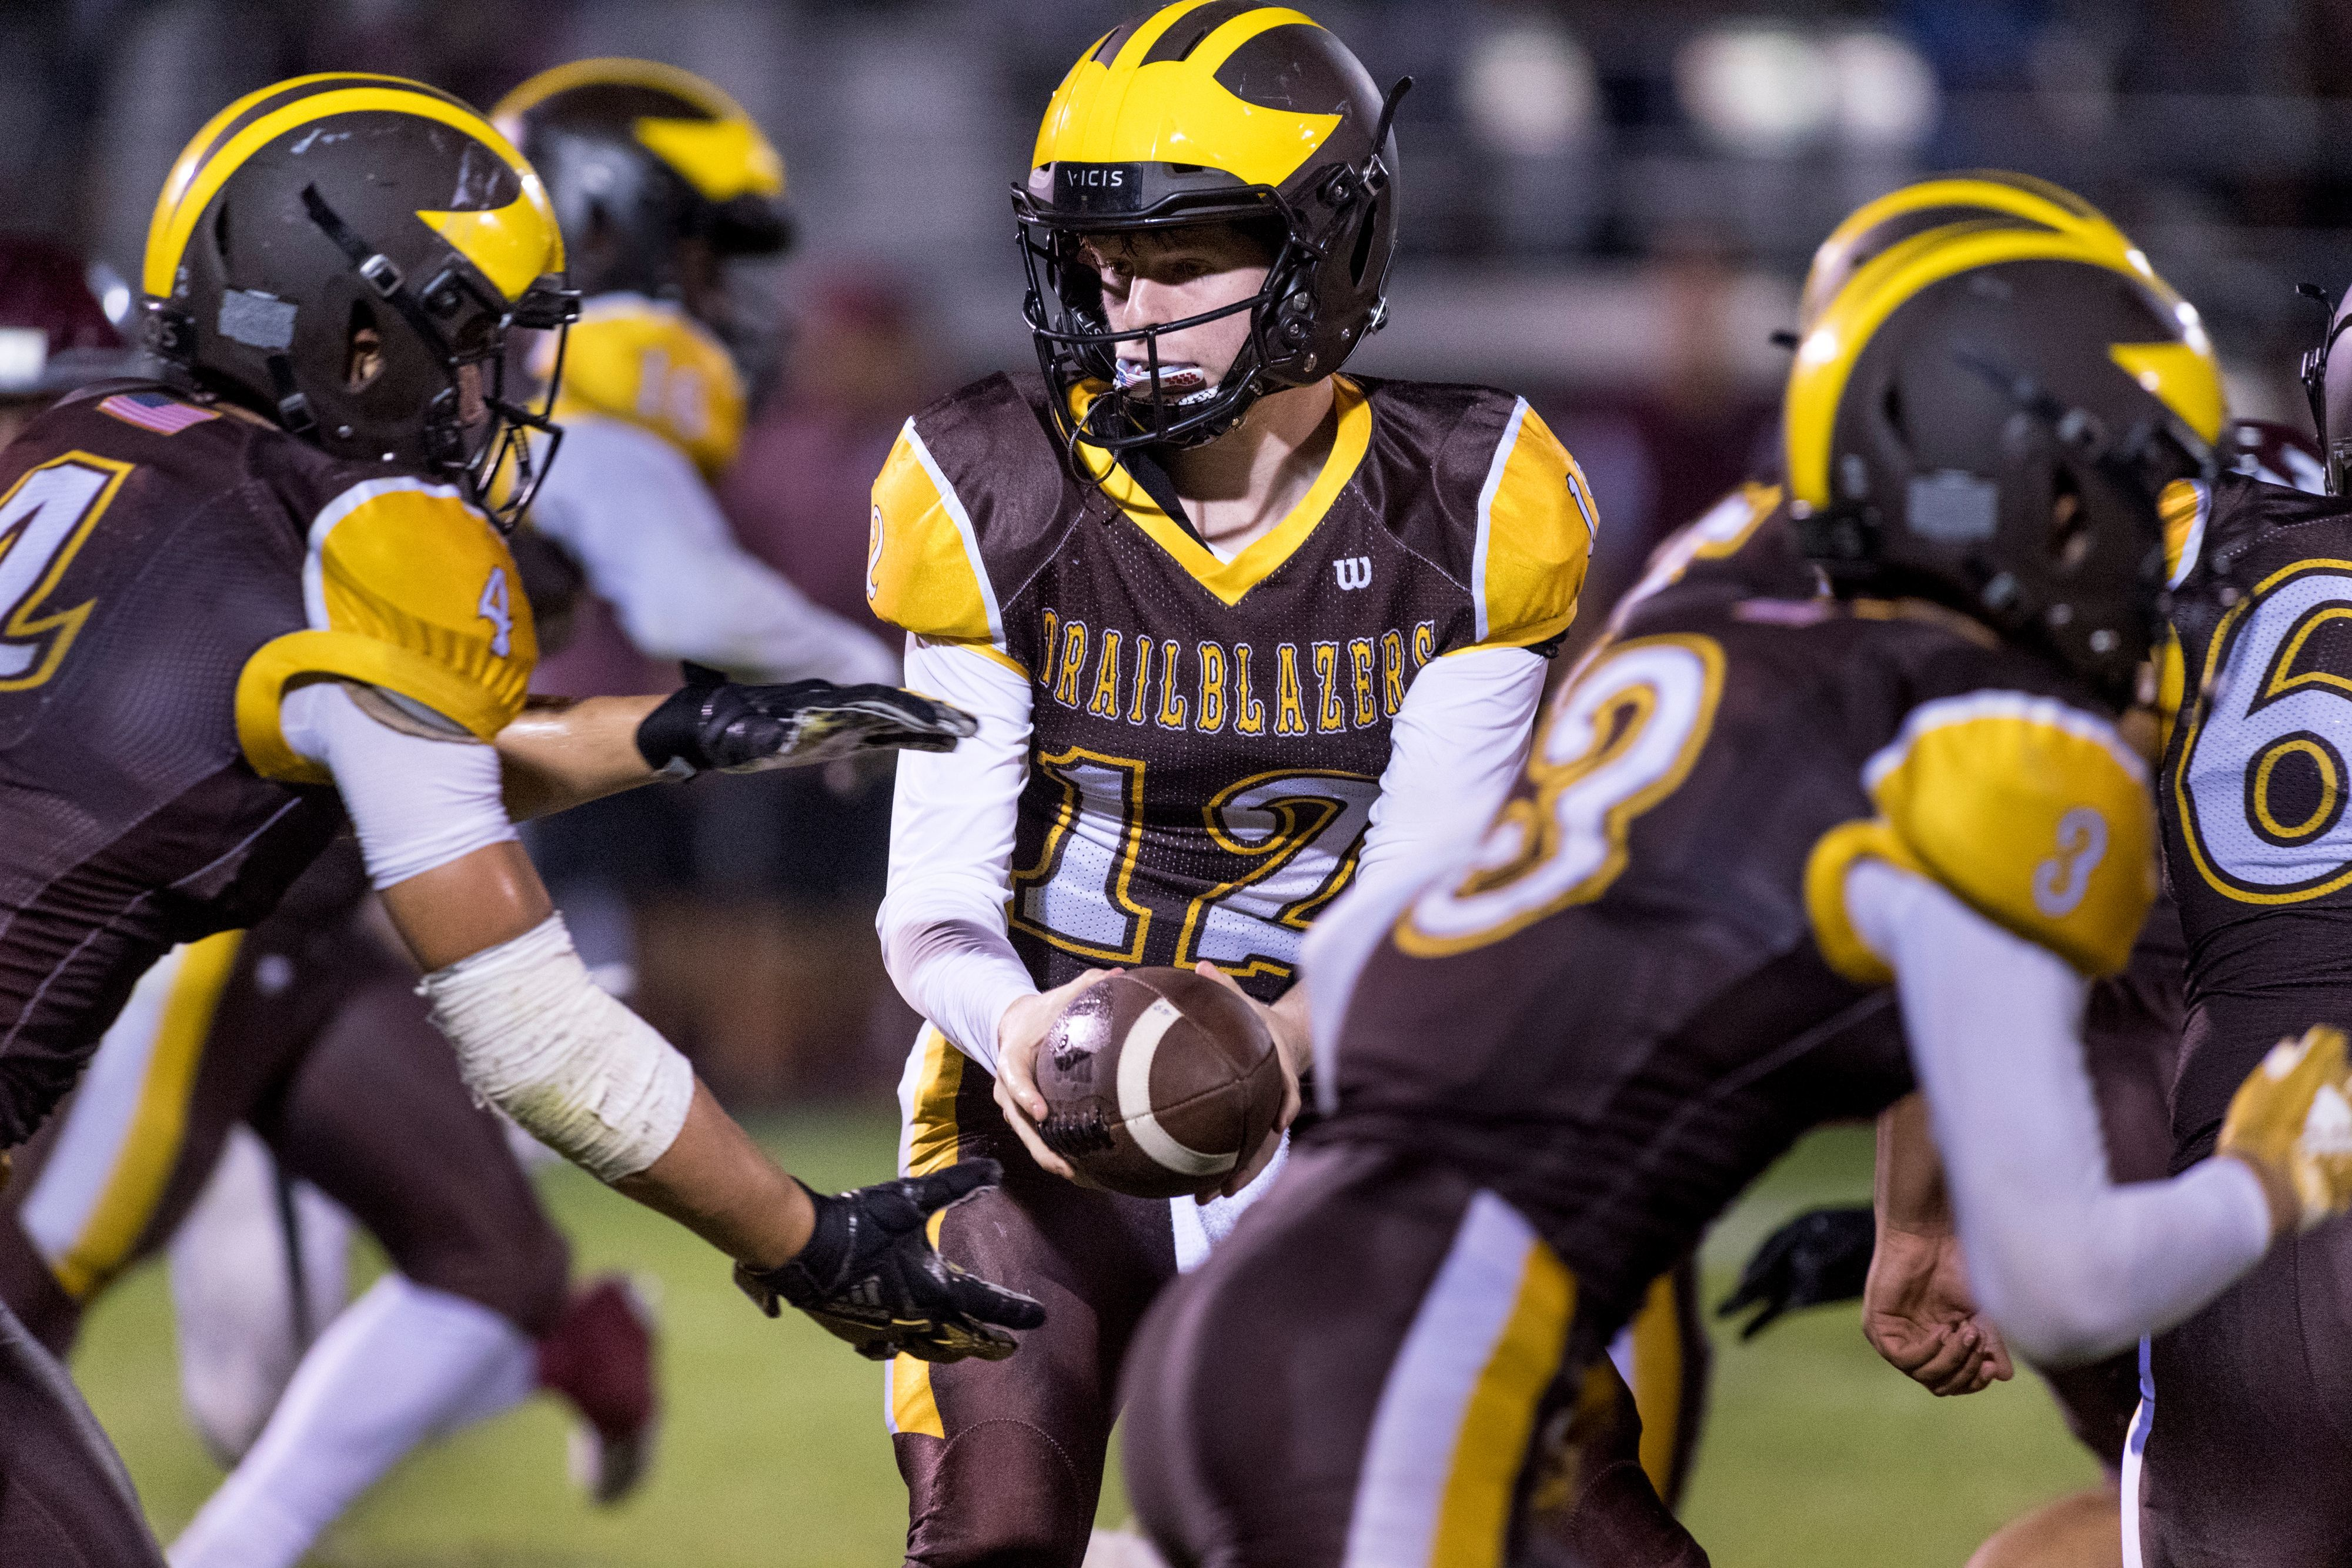 Golden West quarterback Tyson Sandri hands off to Golden West's Lonnie Wessel against Mt. Whitney in a West Yosemite League football game on Friday, September 28, 2018.